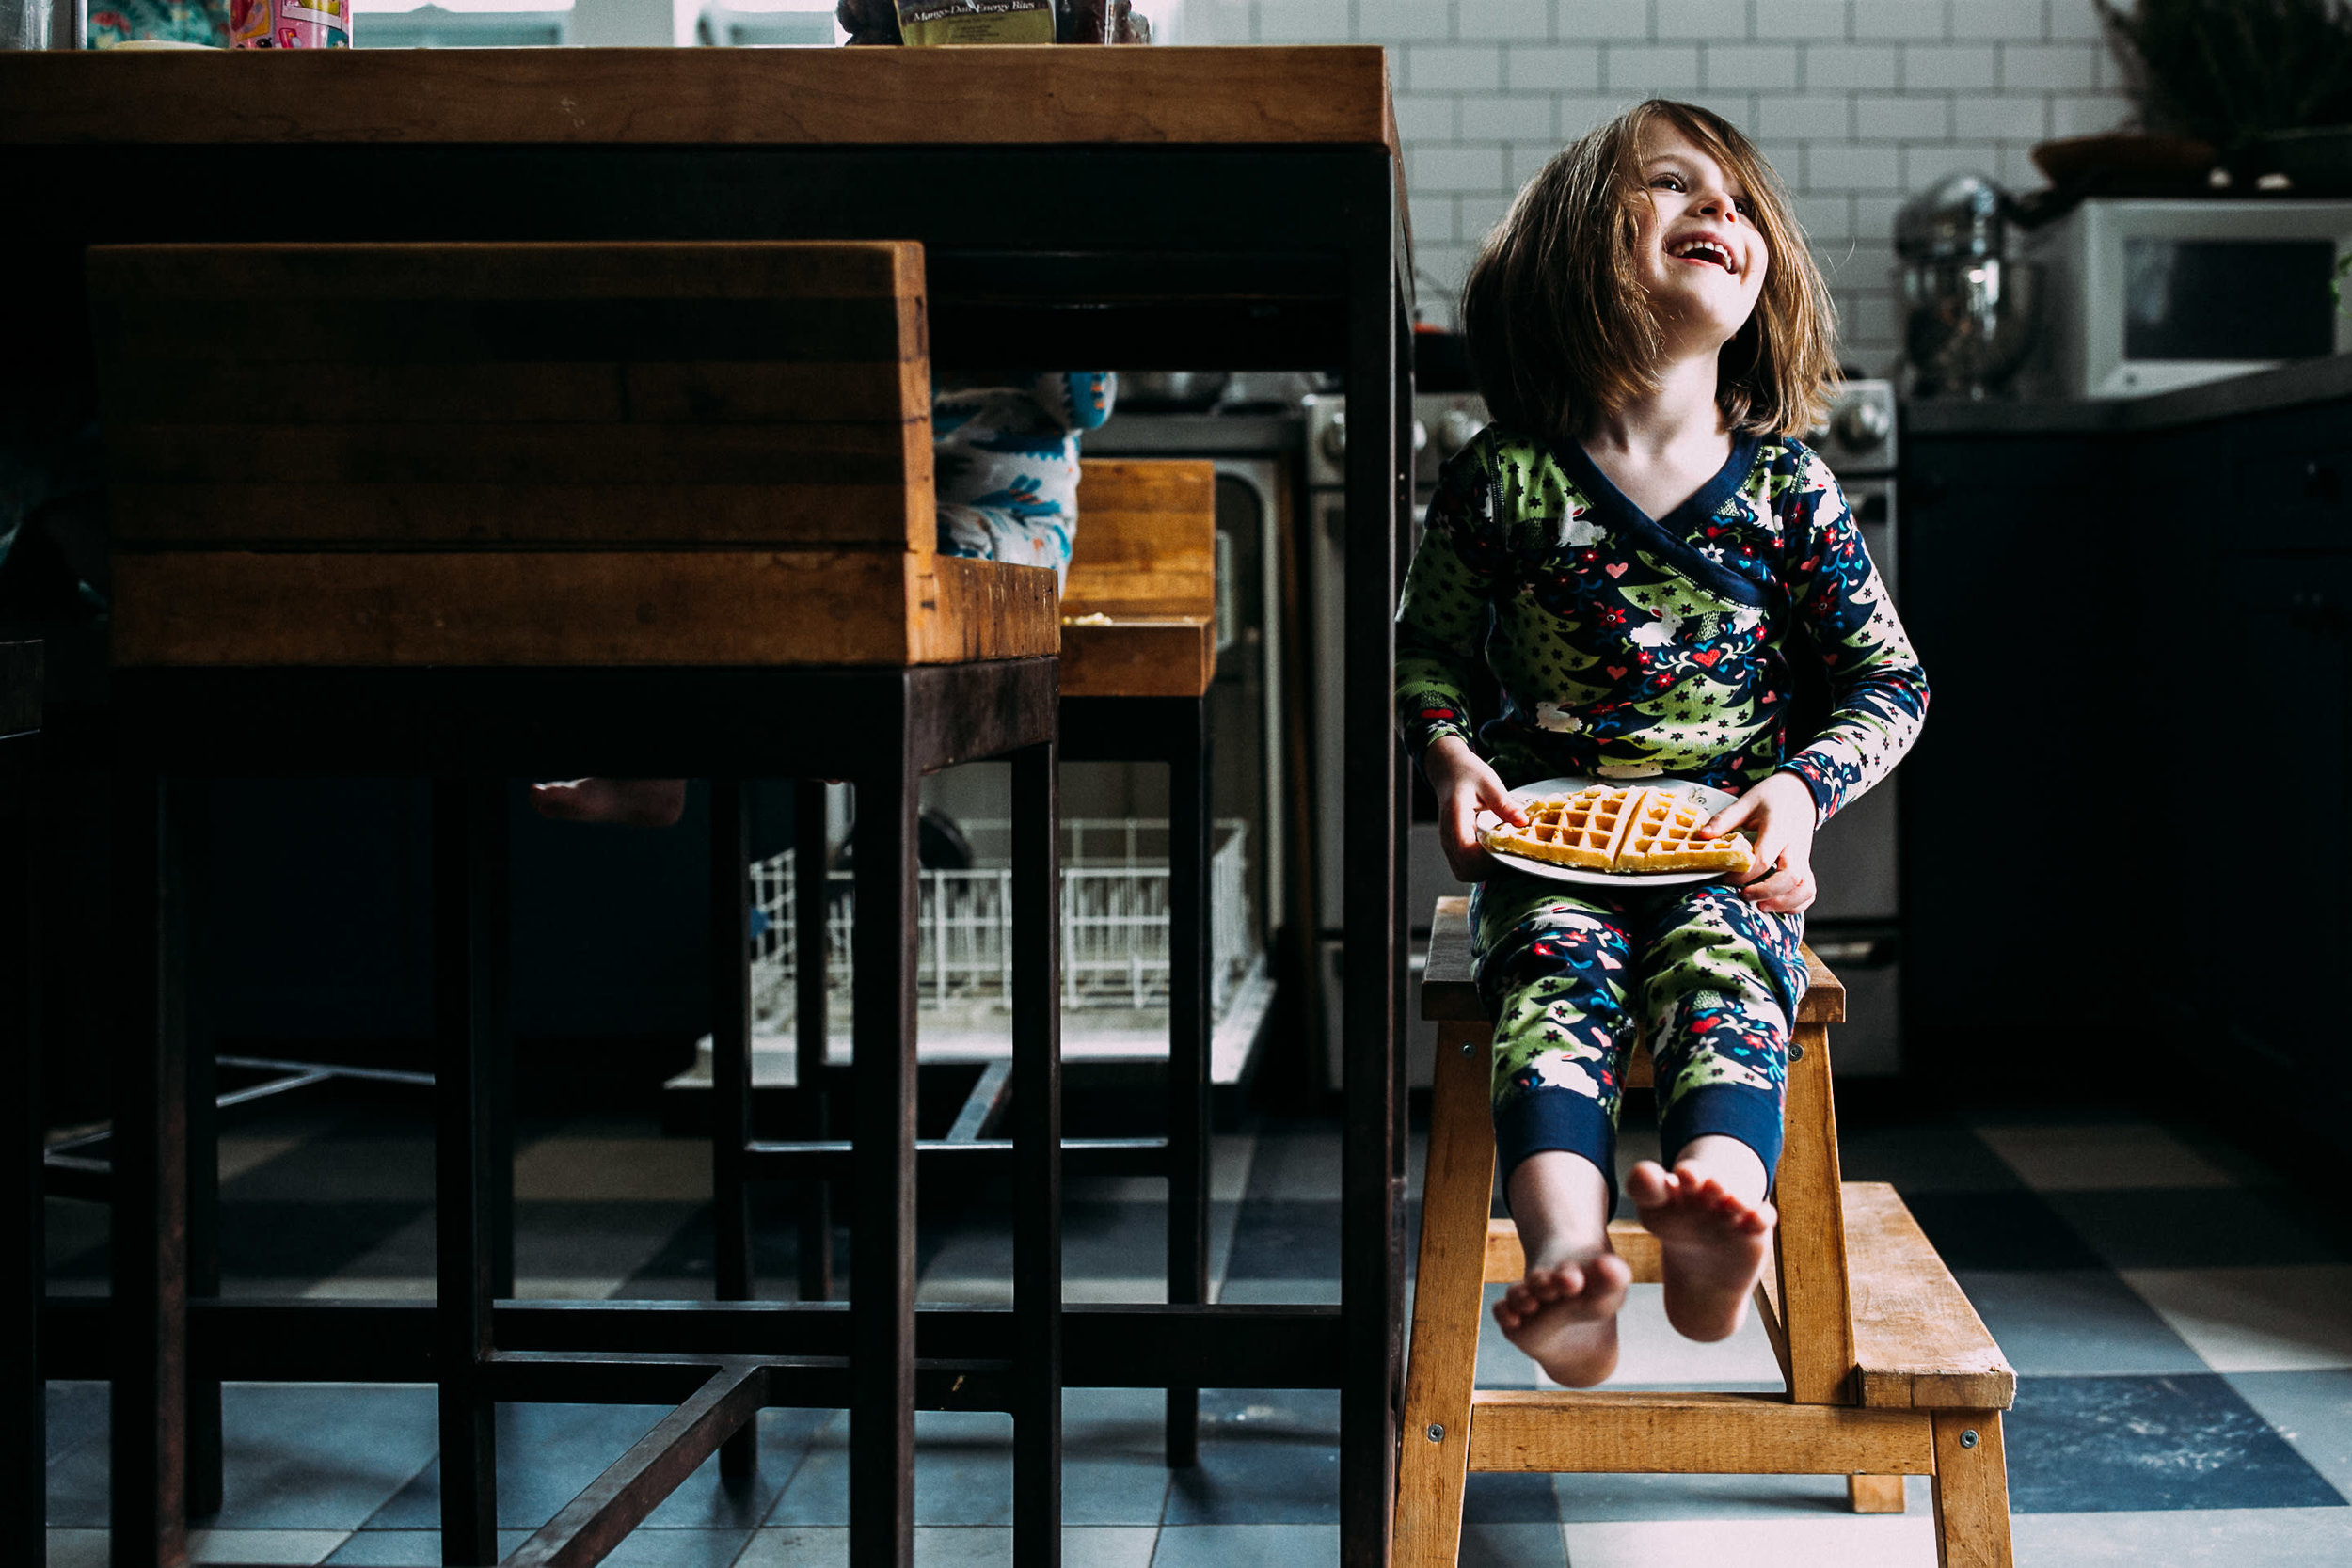 A girl sits on a stool and holds a waffle in her lap while looking up and smiling